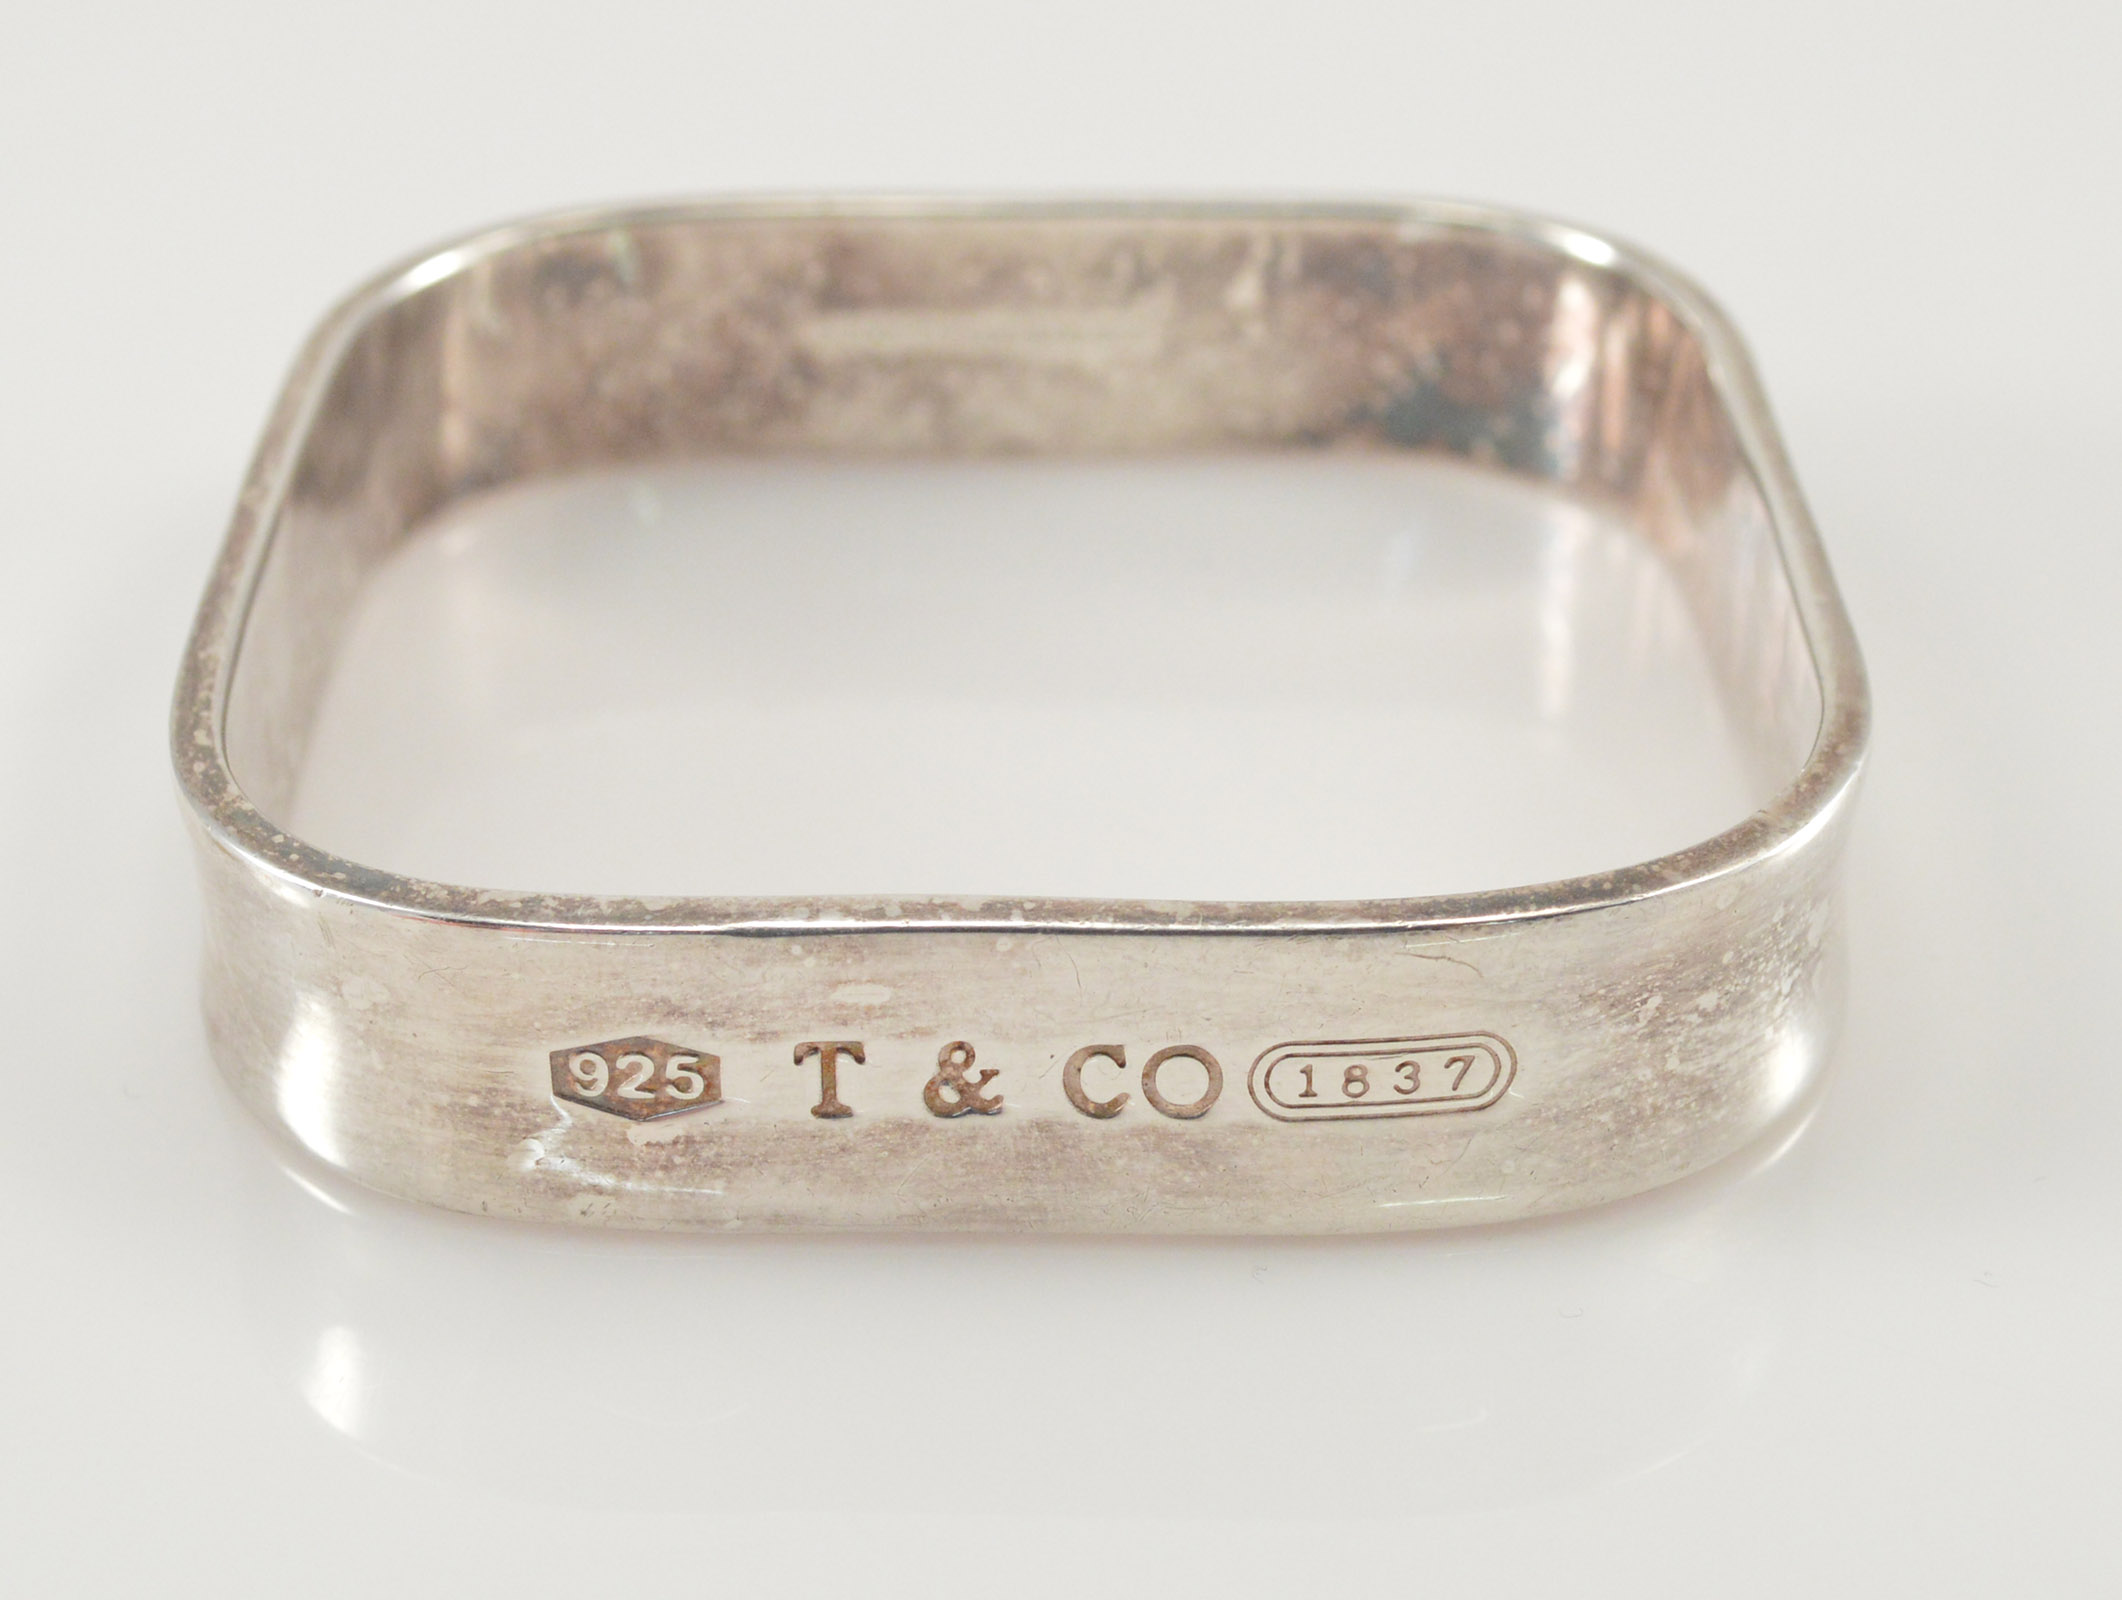 Solid Silver Tiffany Co Rounded Edge Square Bangle 2 4 Diameter Sterling Bracelet 47 8g Marked 925